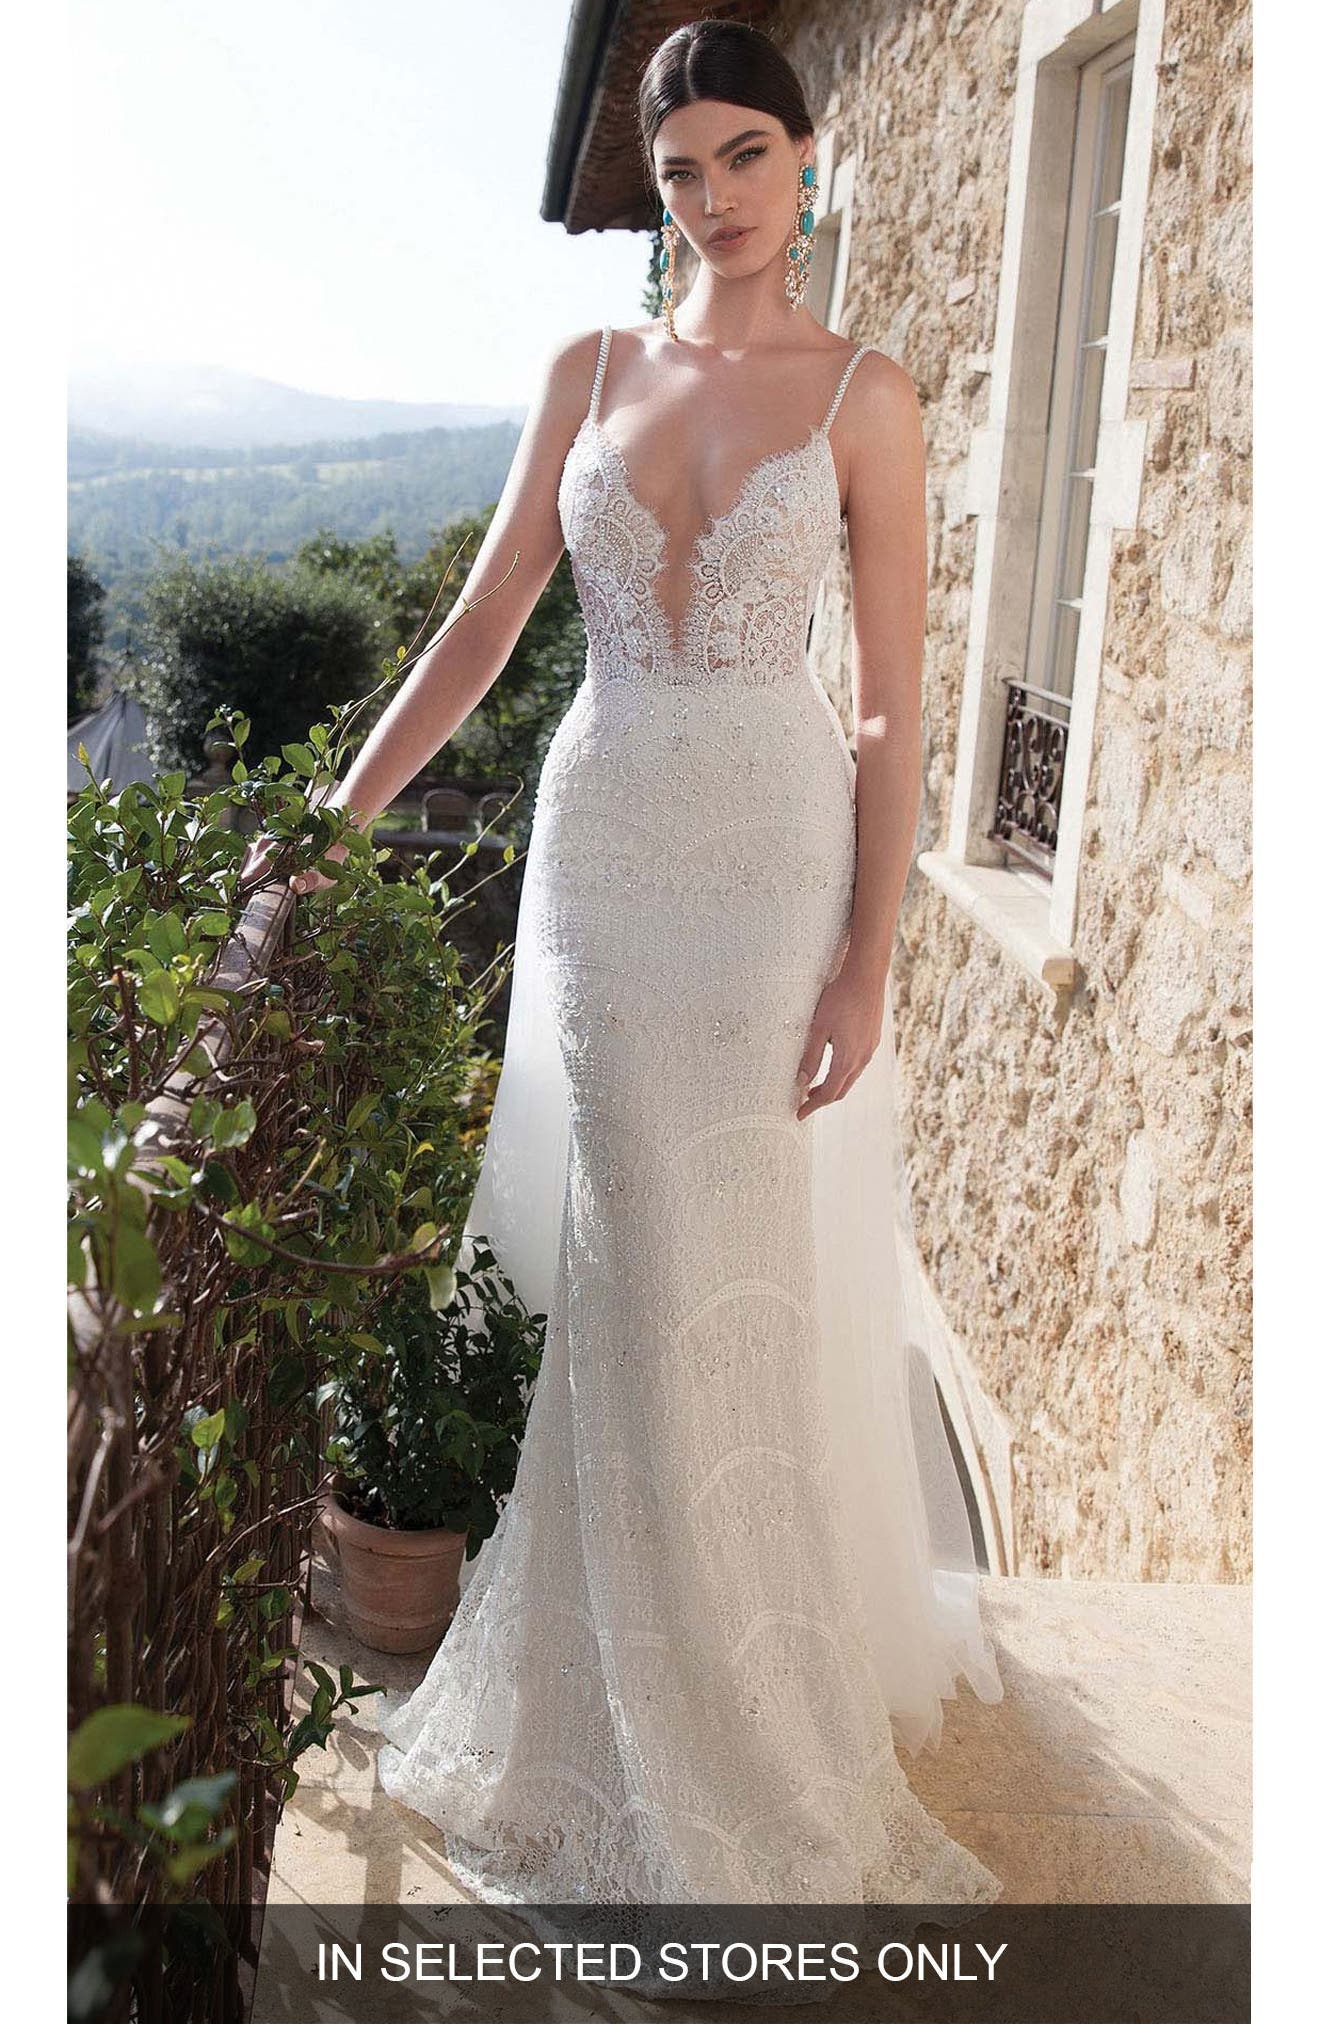 Alternate Image 1 Selected - Berta Embellished Lace Column Gown with Detachable Train